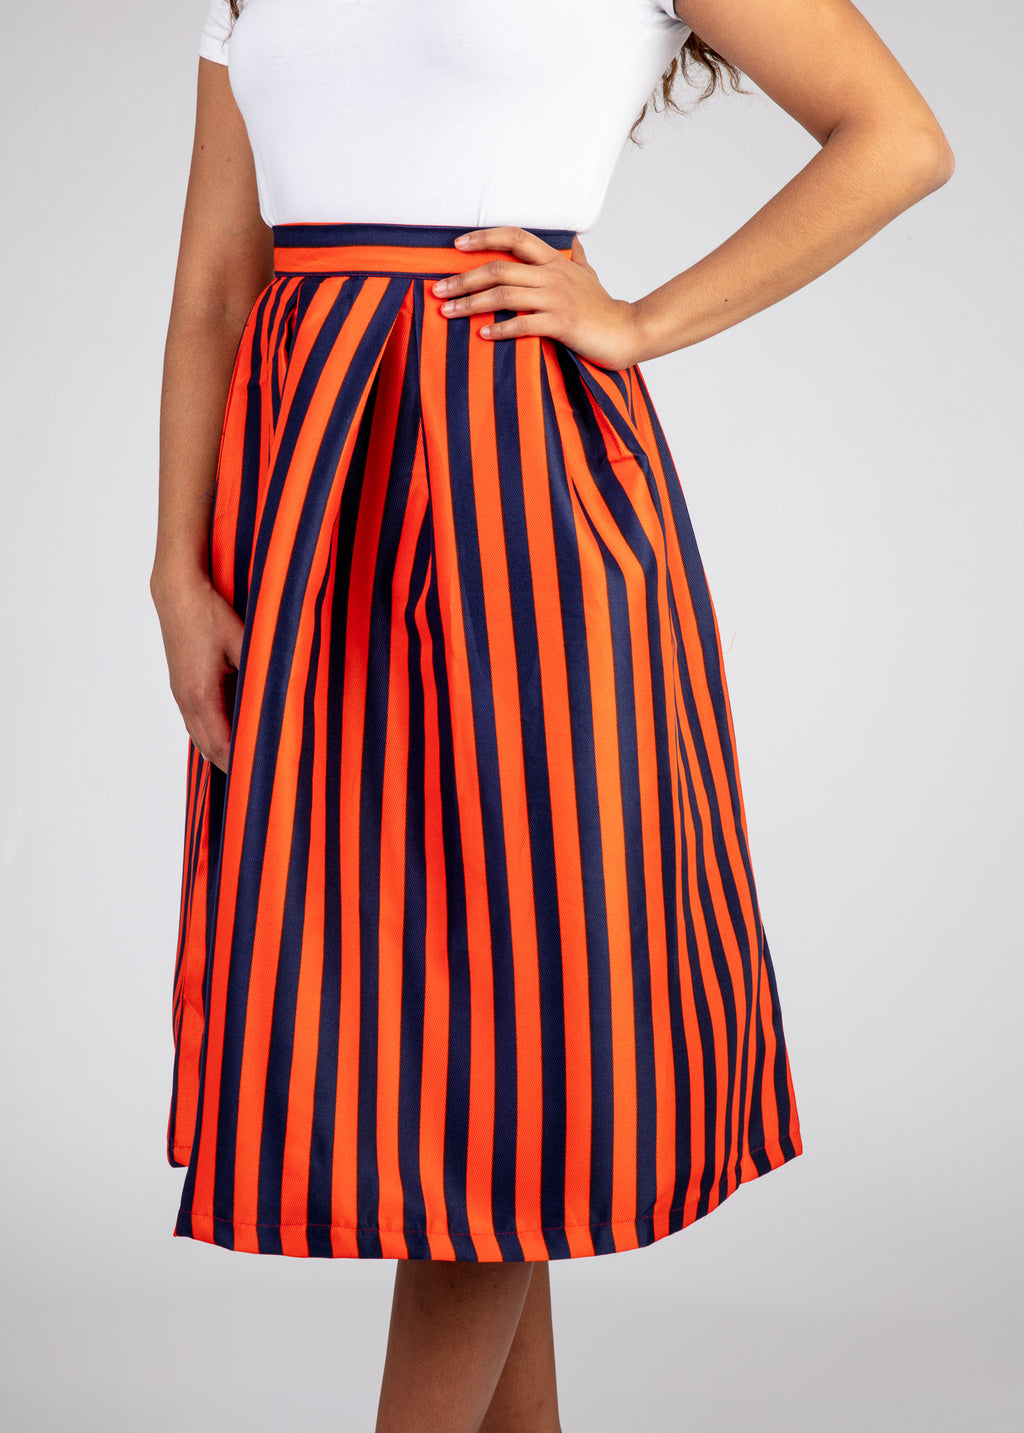 Banded Pleated Skirt - Orange and Dark Blue Stripes